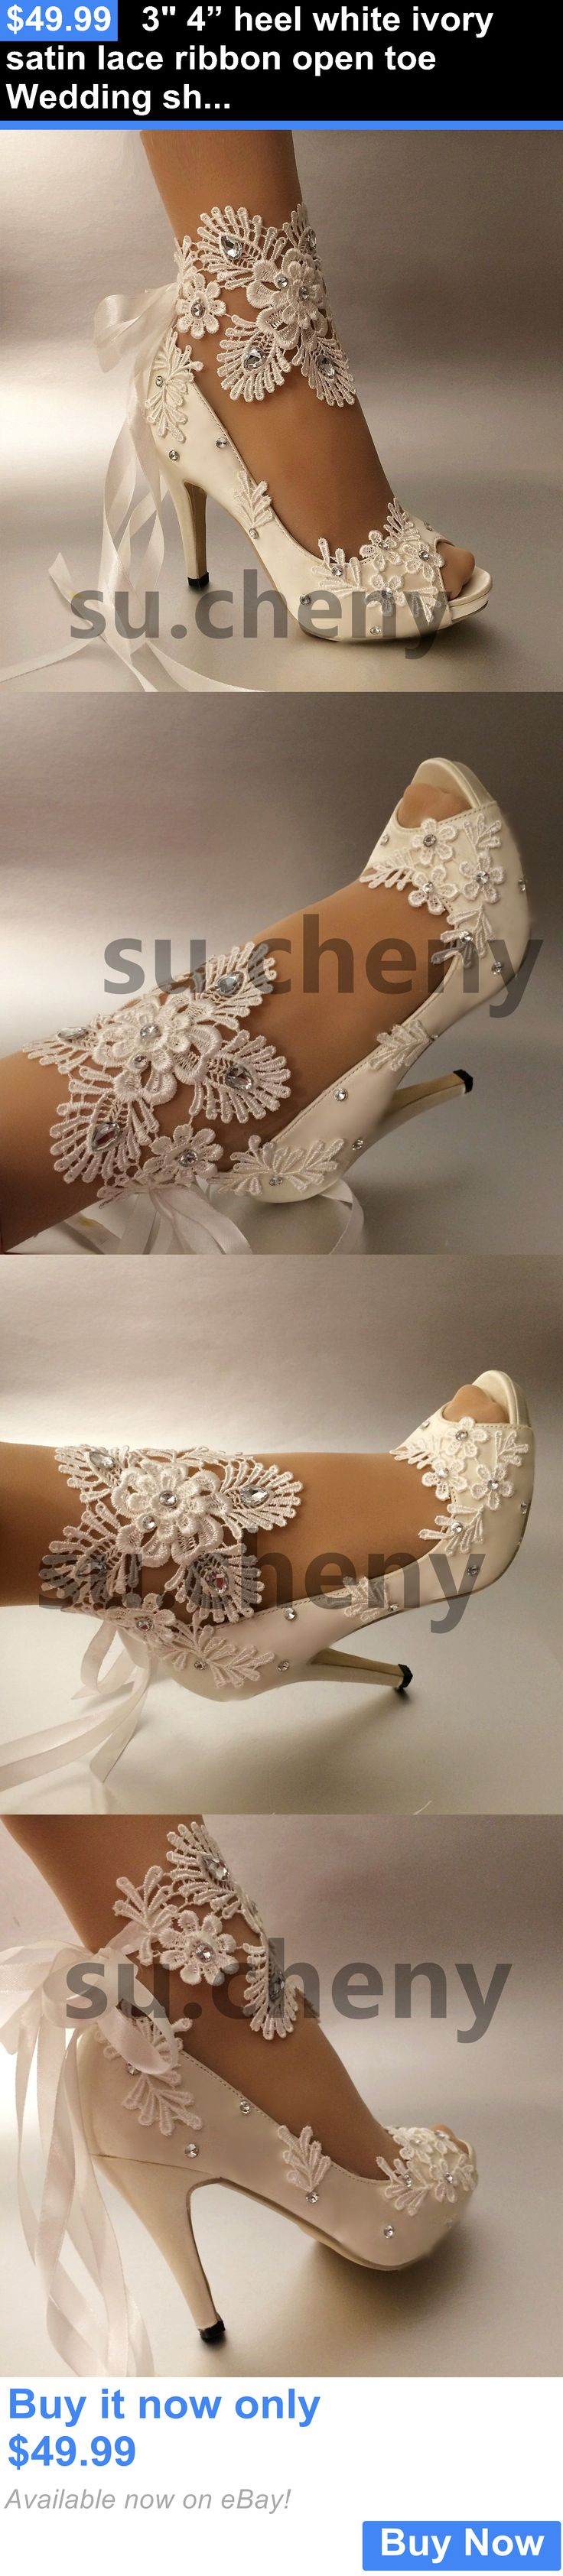 """Wedding Shoes And Bridal Shoes: 3 4"""" Heel White Ivory Satin Lace Ribbon Open Toe Wedding Shoes Bride Size 5-9.5 BUY IT NOW ONLY: $49.99"""